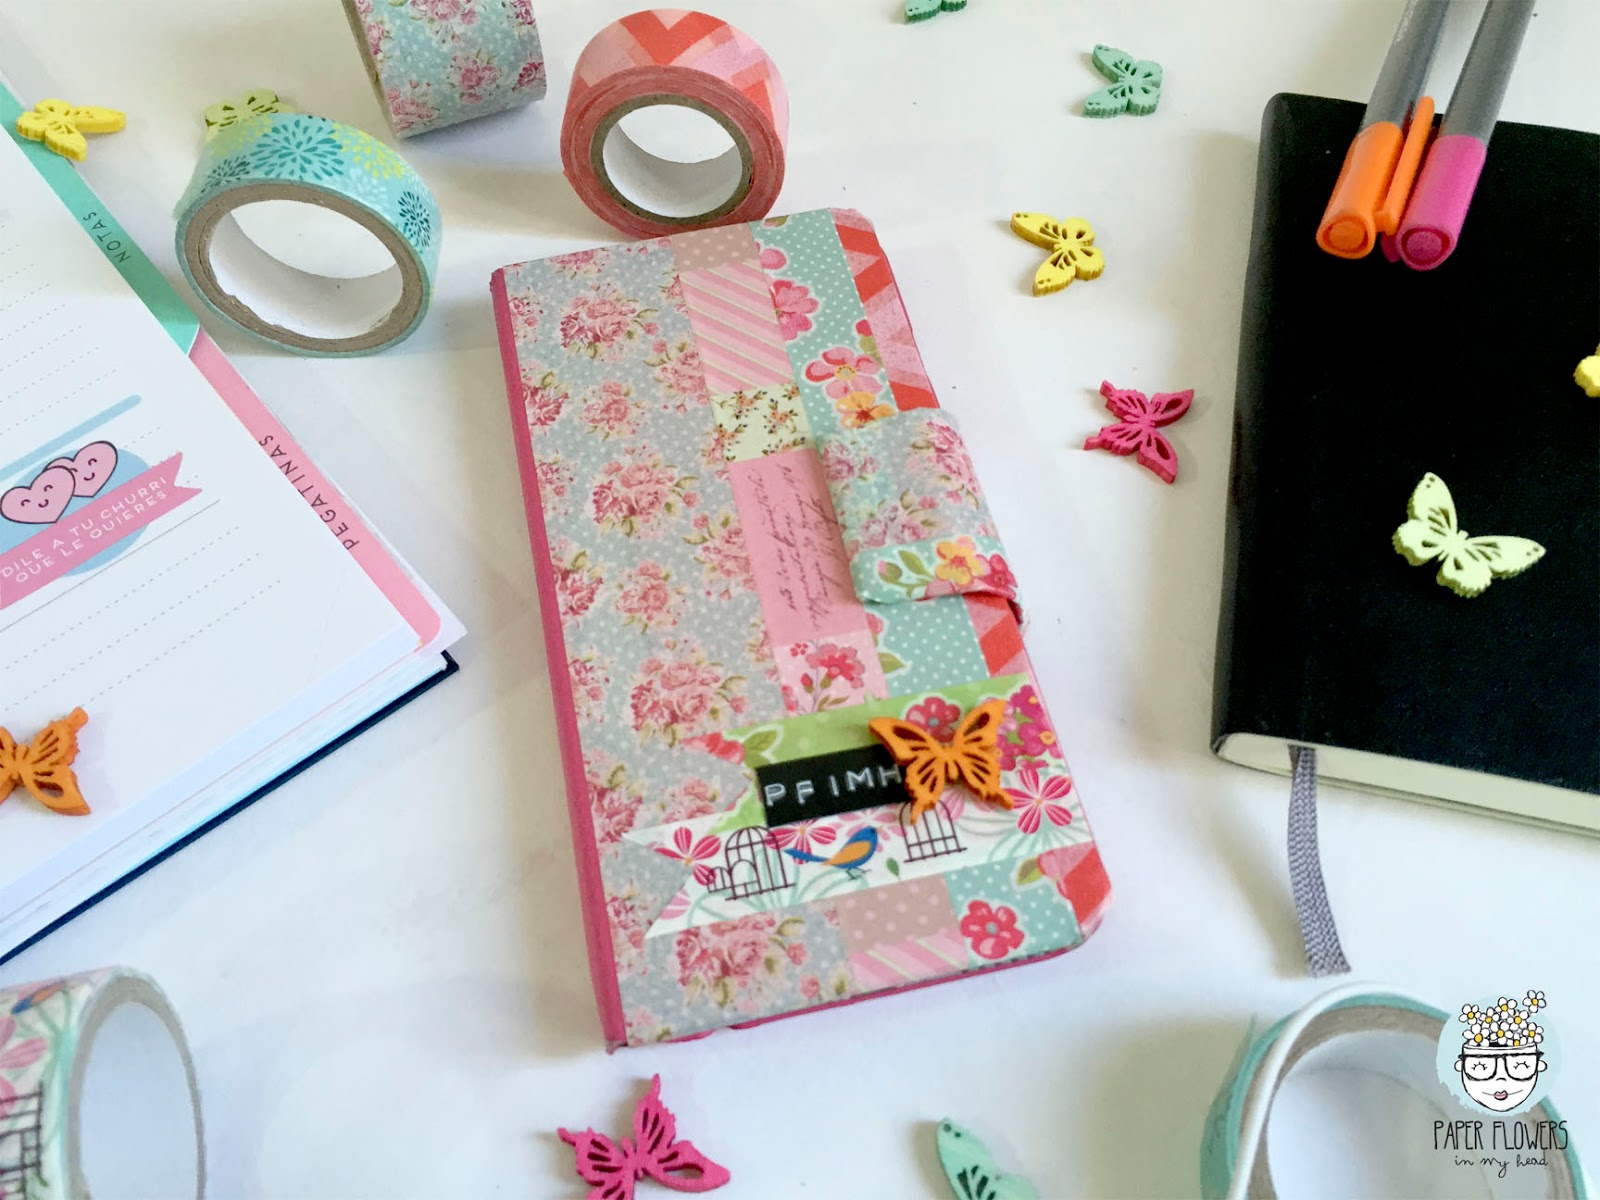 C mo personalizar tu funda de m vil con washi tapes paper flowers in my head - Como decorar una funda de movil ...